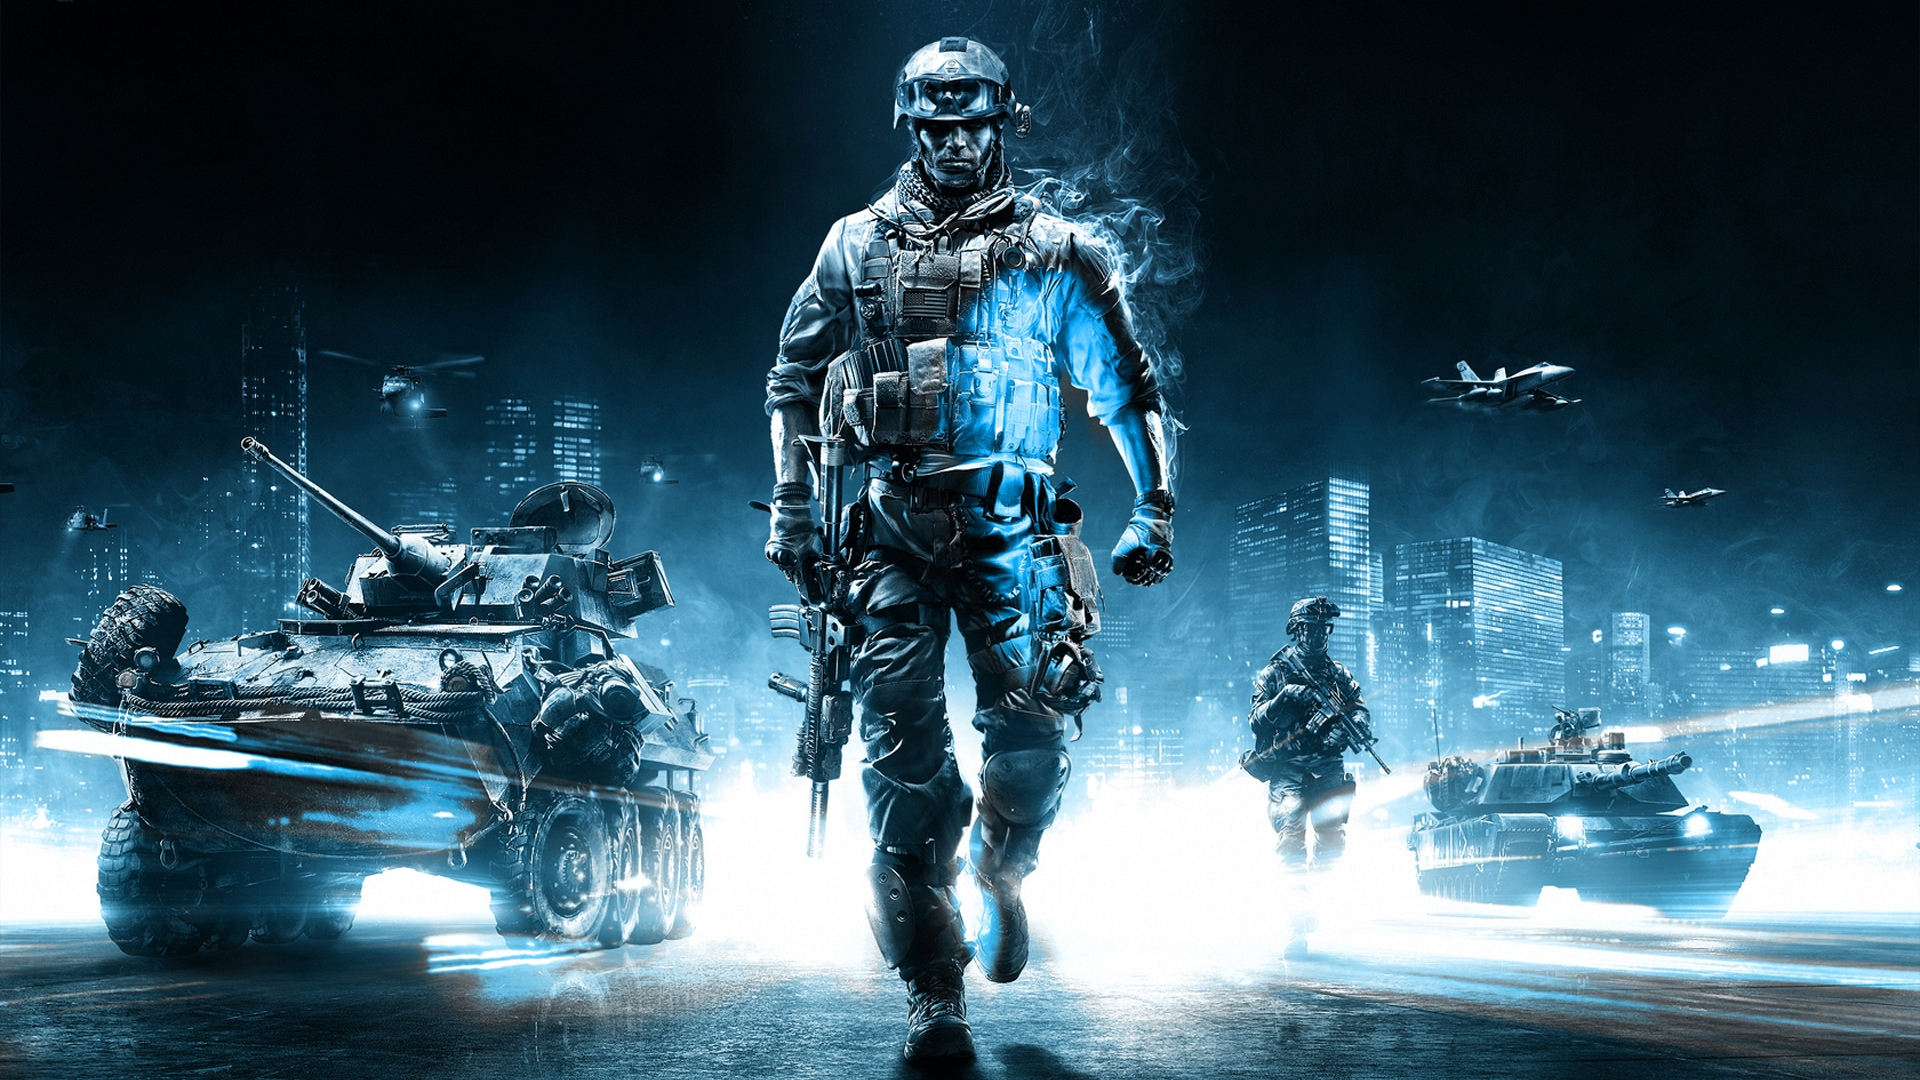 Battlefield 3 Game Wallpapers